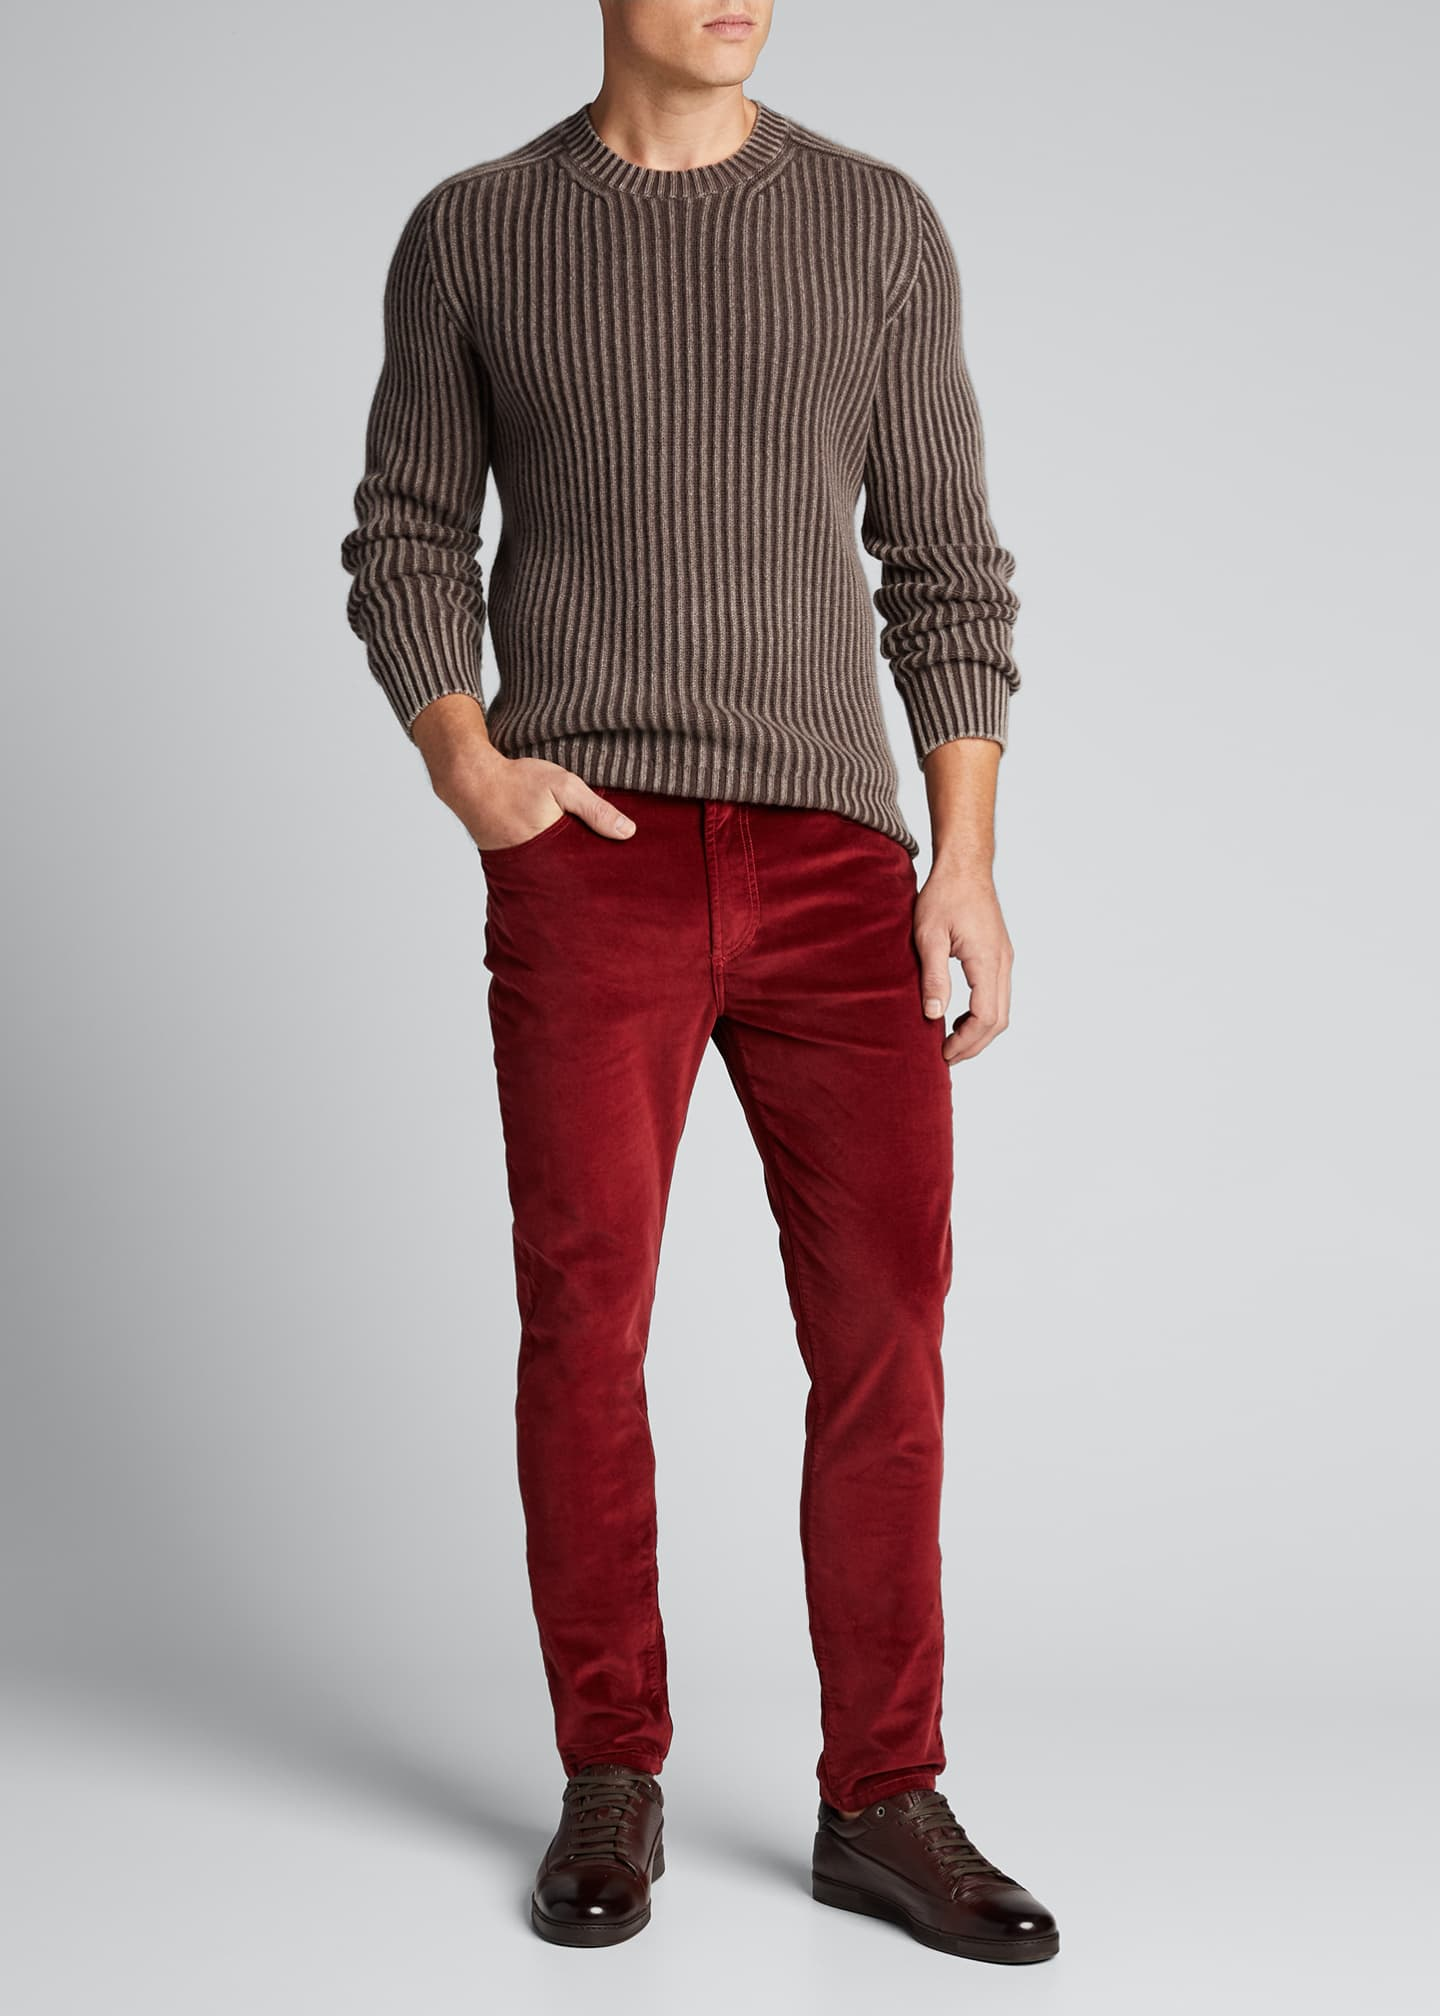 Iris Von Arnim Men's Stonewashed Ribbed Crewneck Sweater